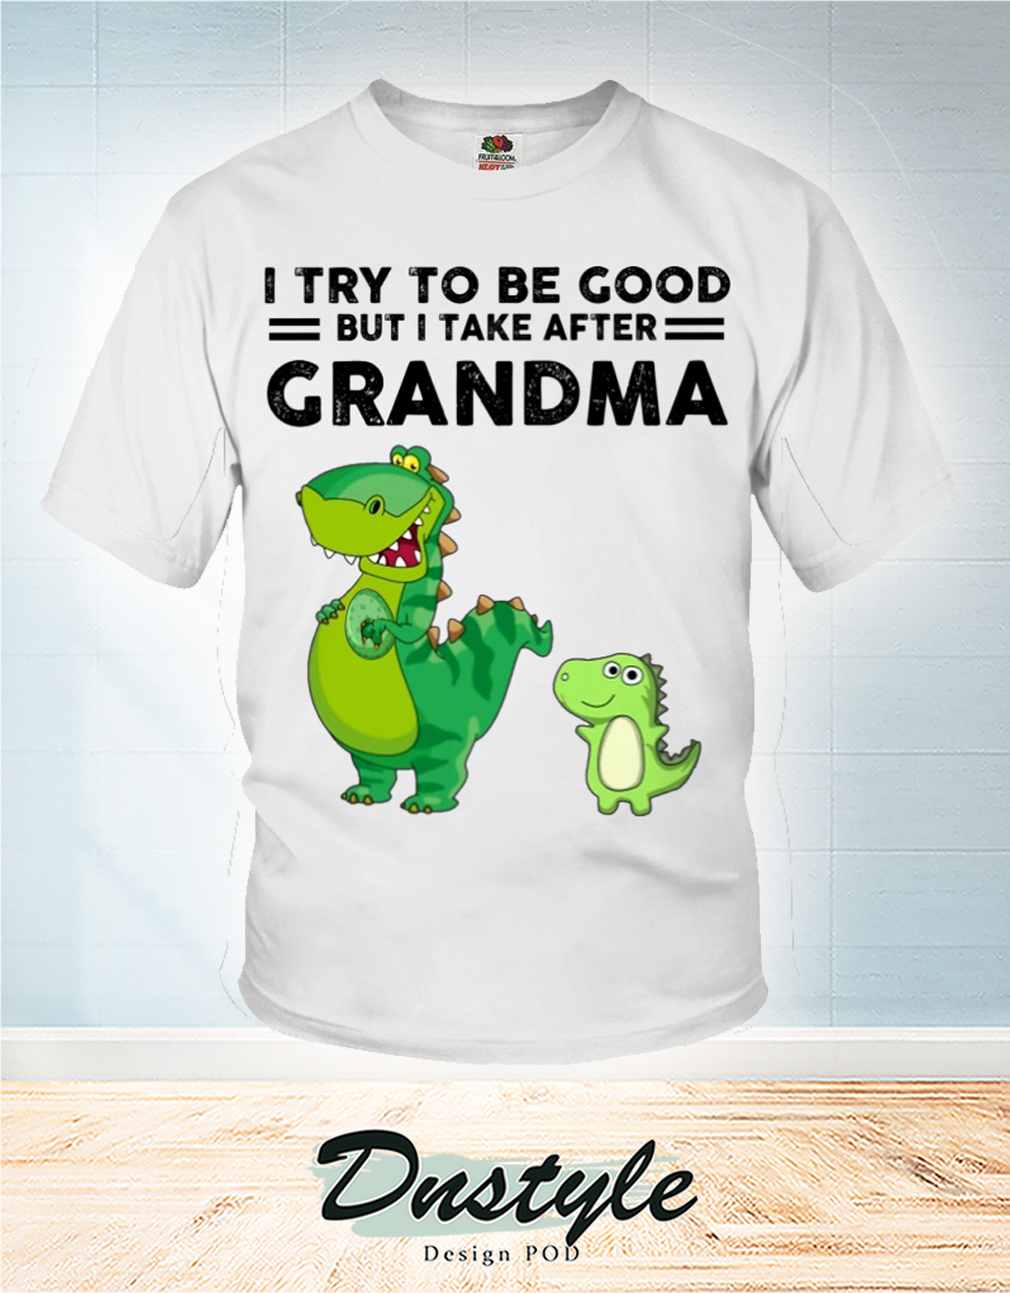 I try to be good but I take after grandpa shirt 2021